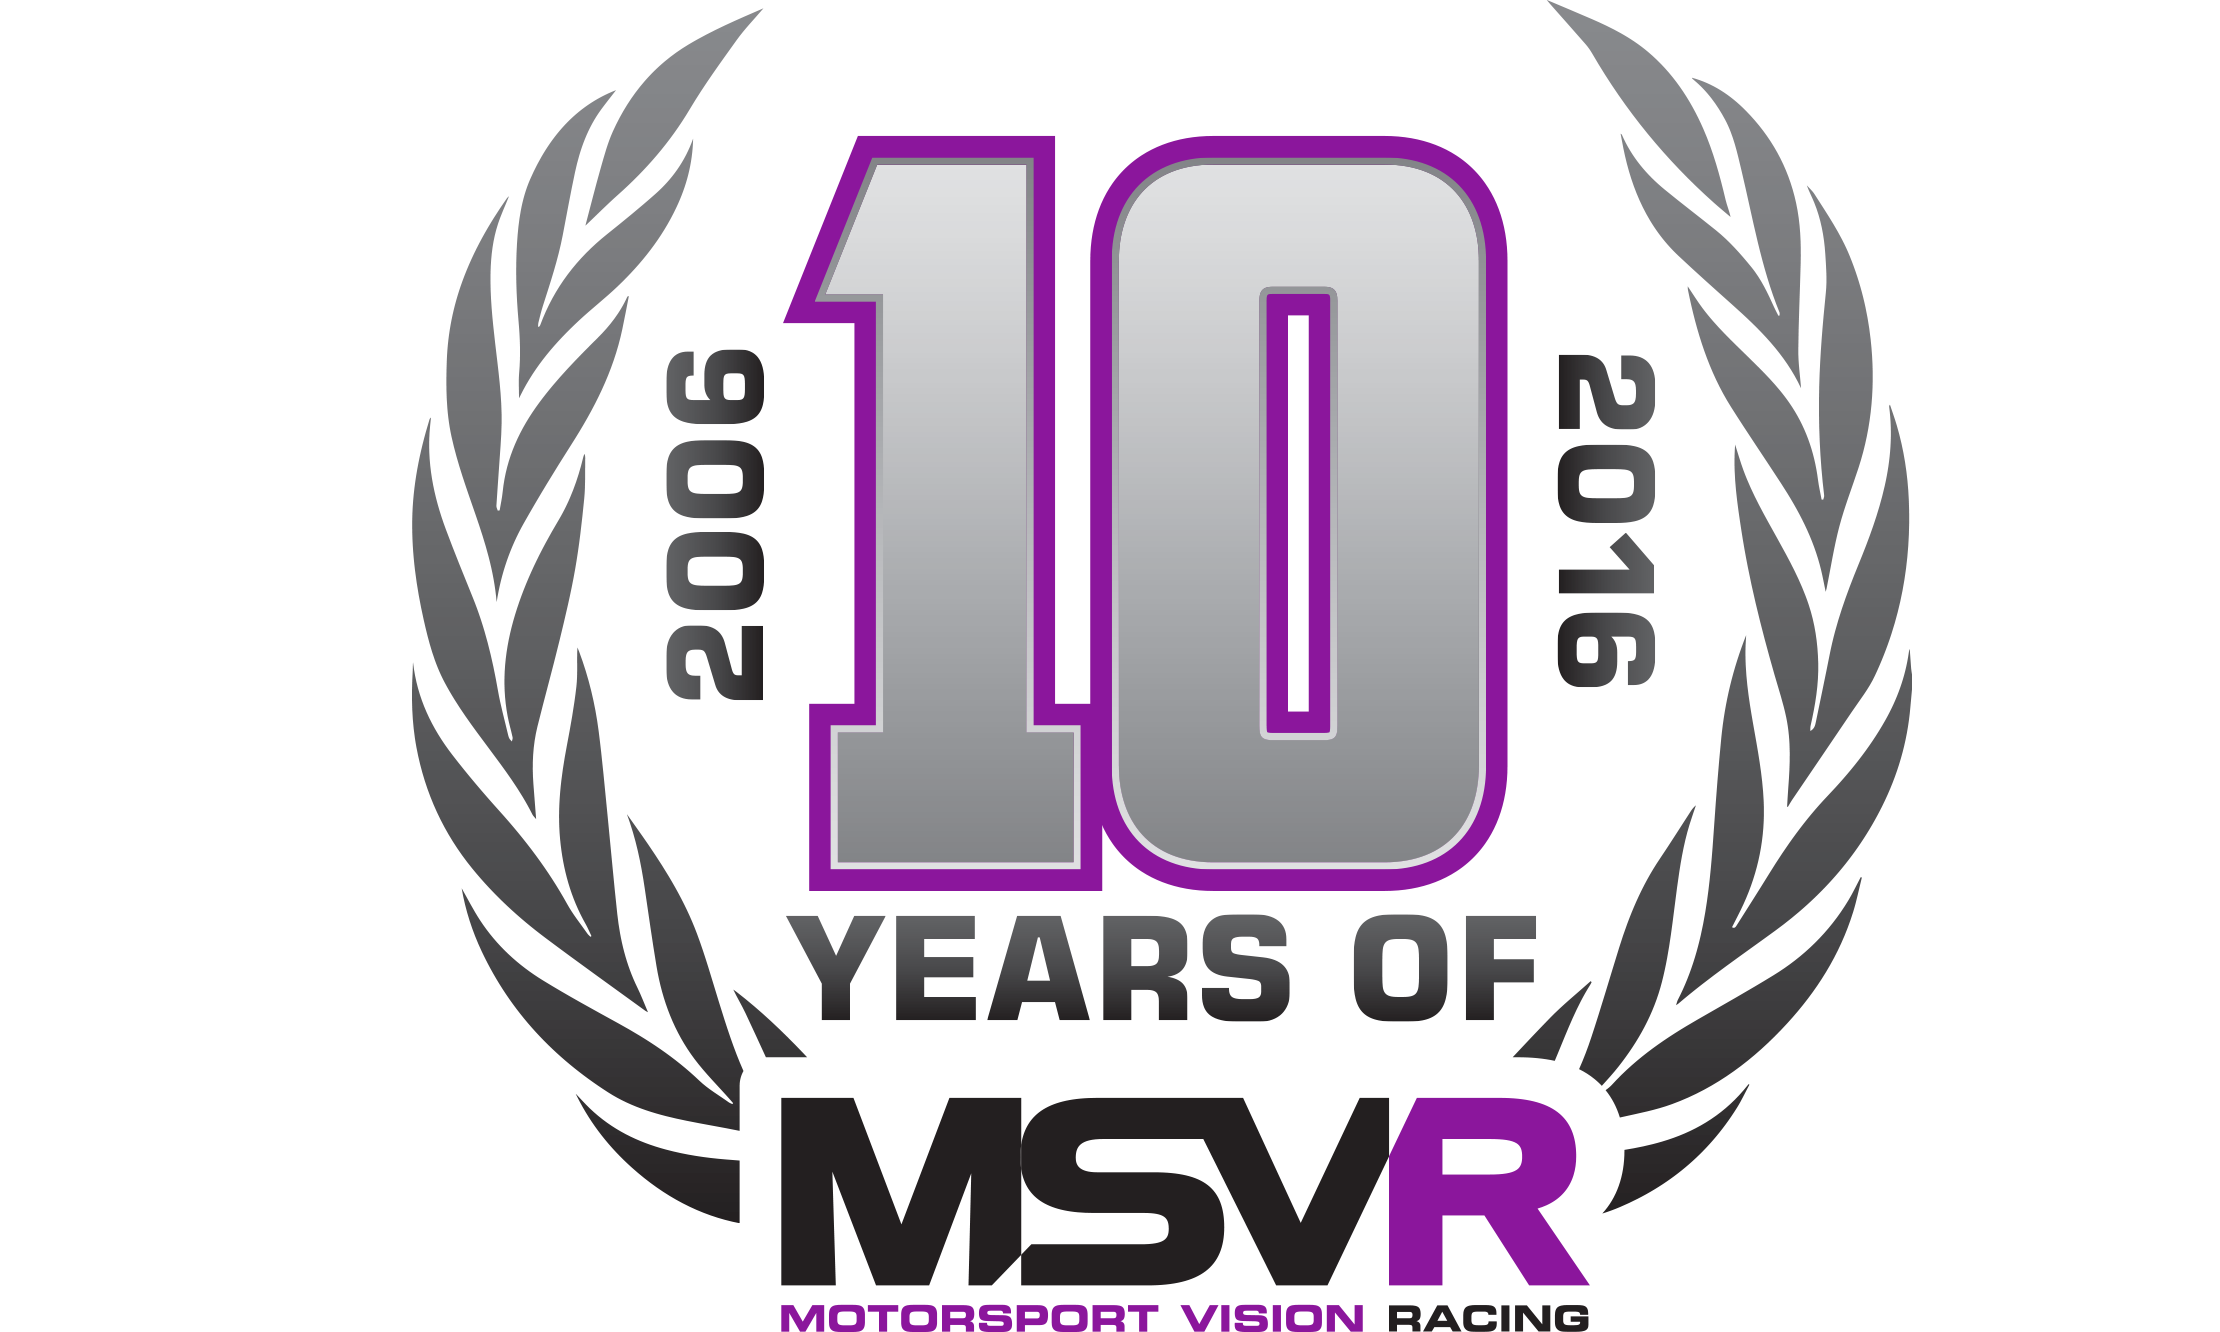 MSVR News - Media Day to launch 10th Anniversary season